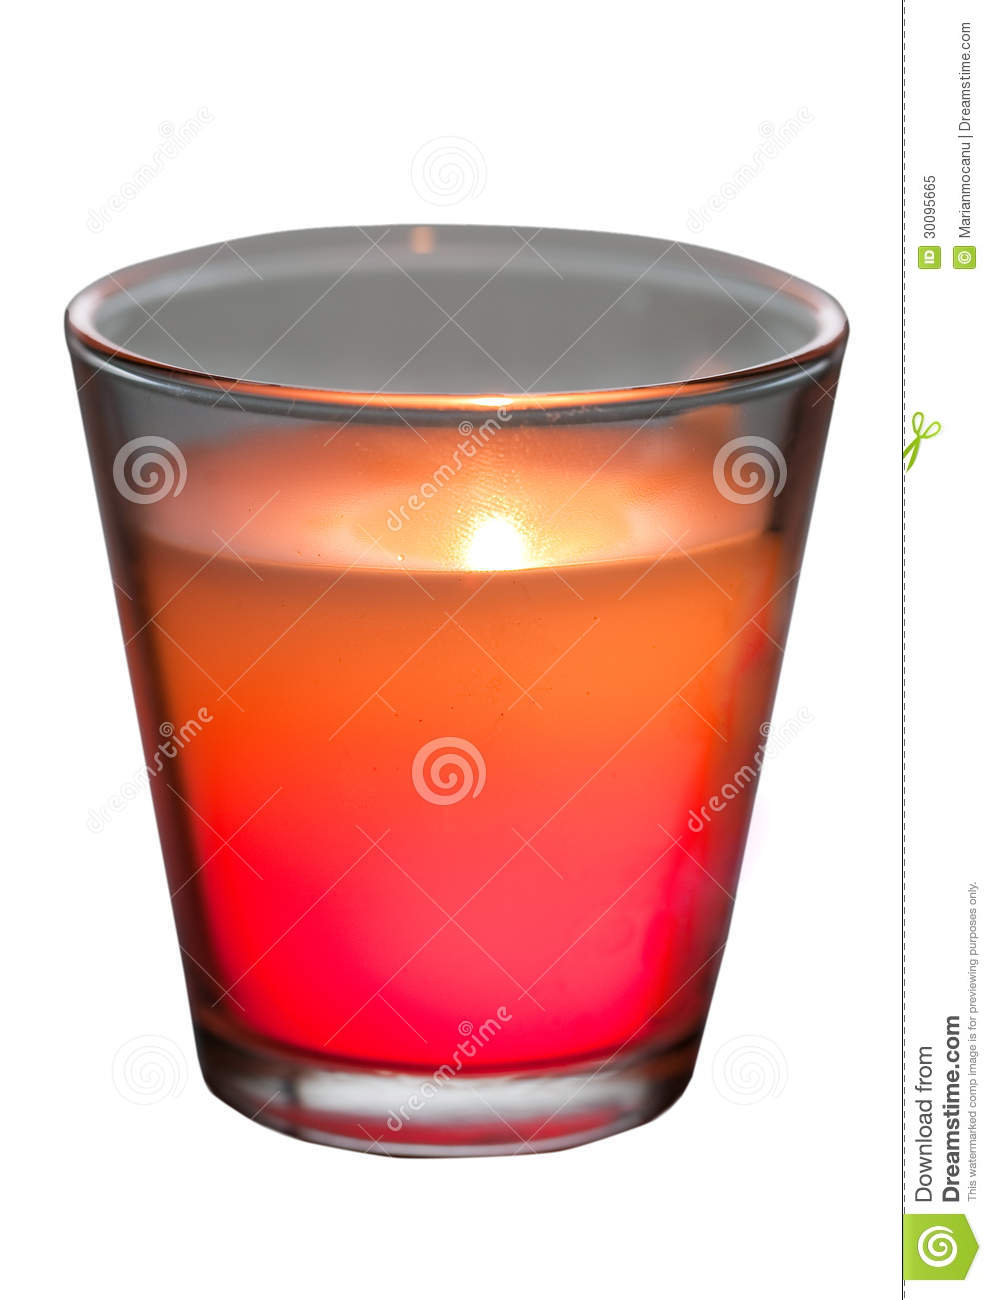 red candle white background - photo #29